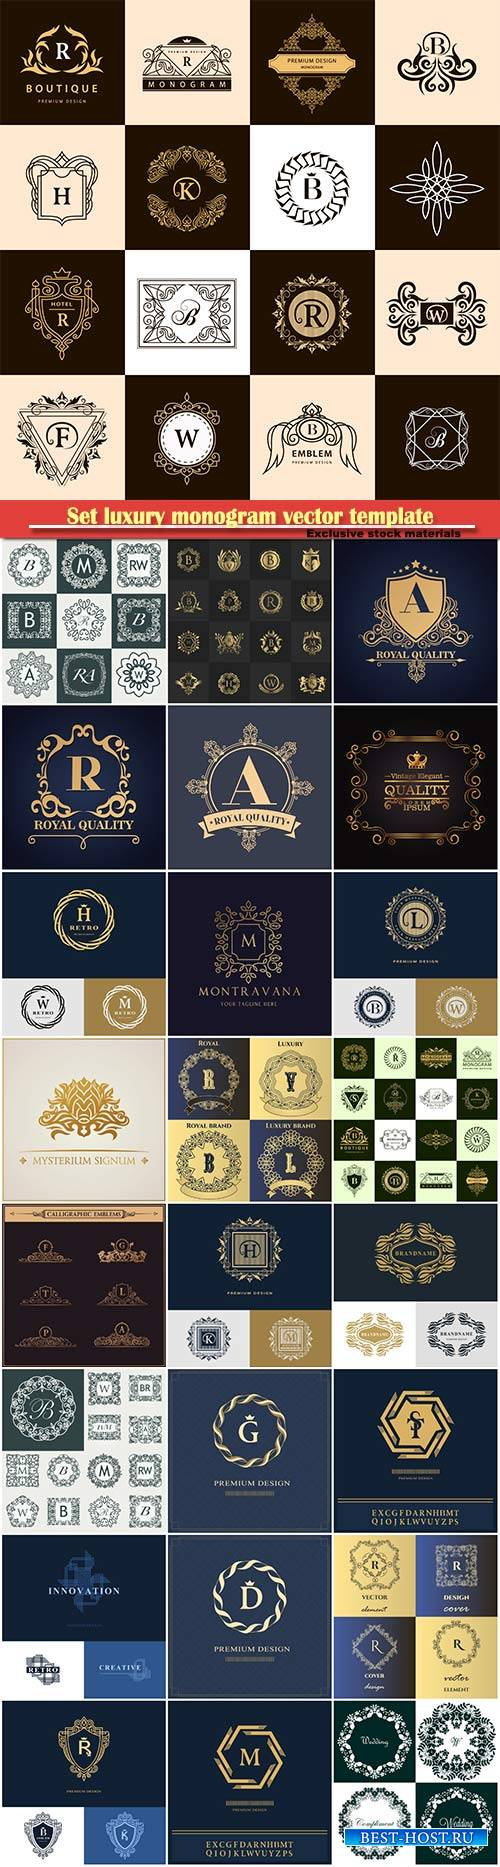 Set luxury monogram vector template, logos, badges, symbols # 3